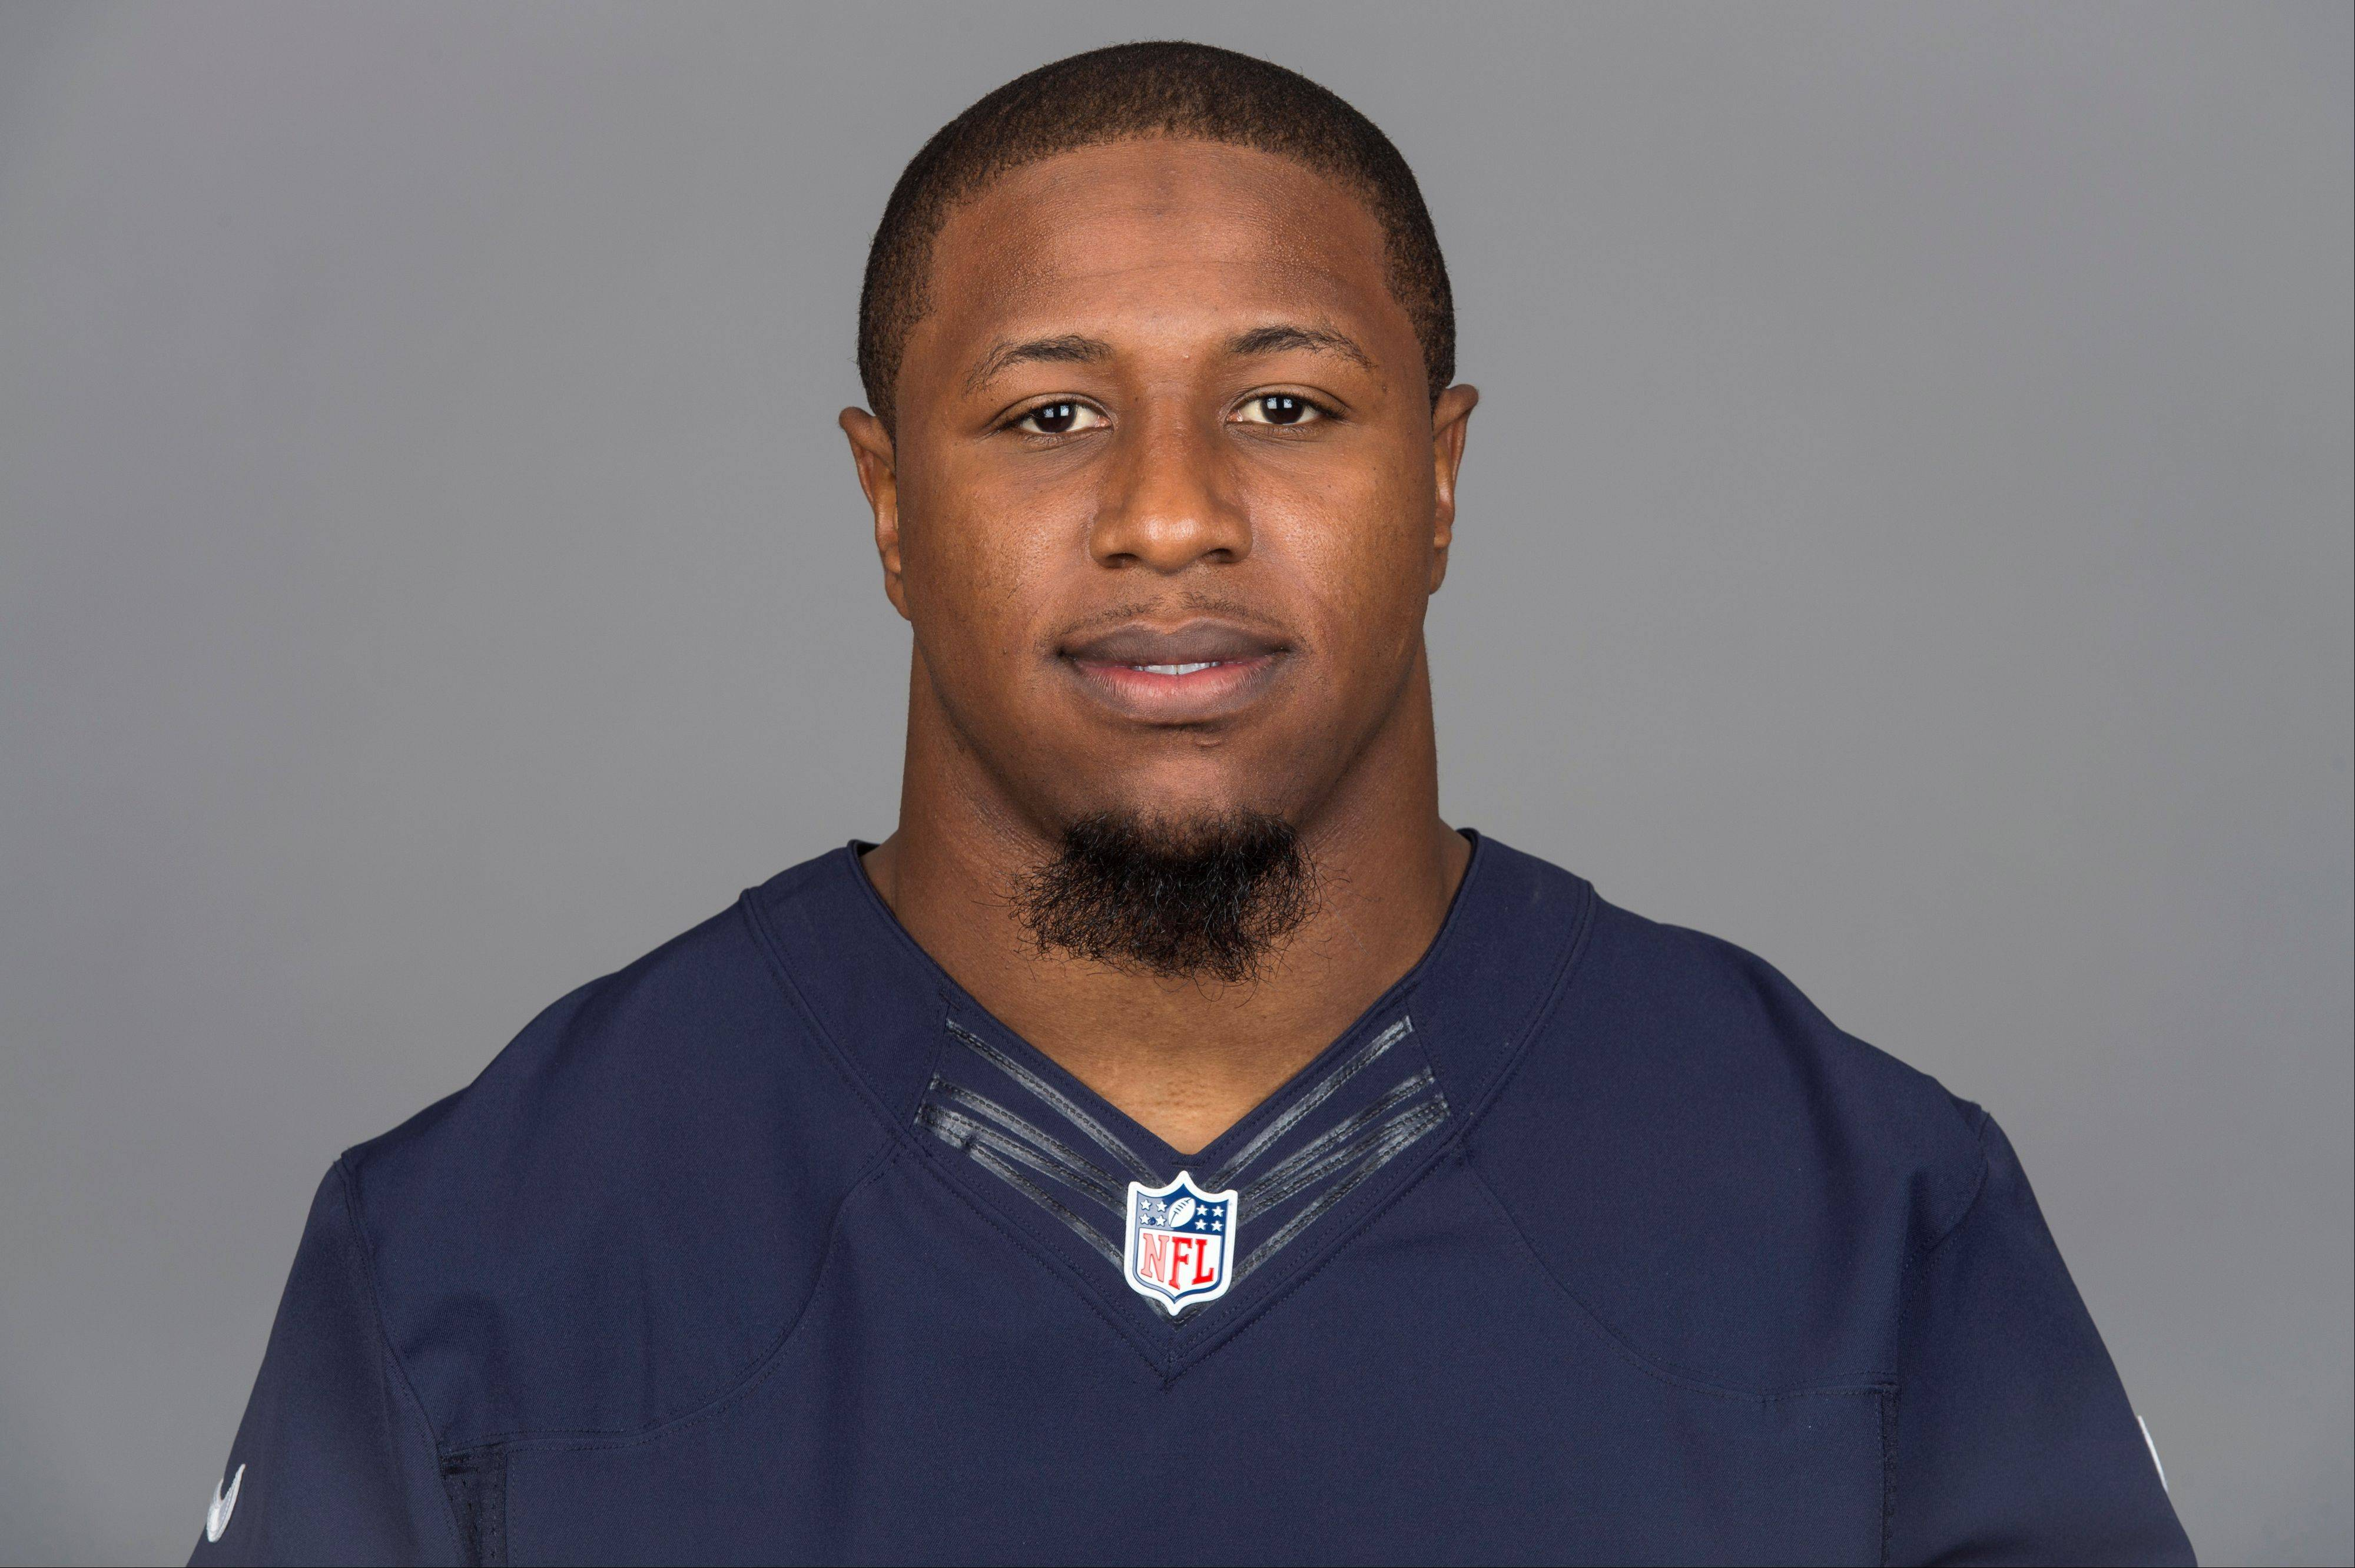 Bears linebacker Jonathan Bostic has been fined $21,000 for a hit during last week�s preseason game against San Diego, a source familiar with the situation says.